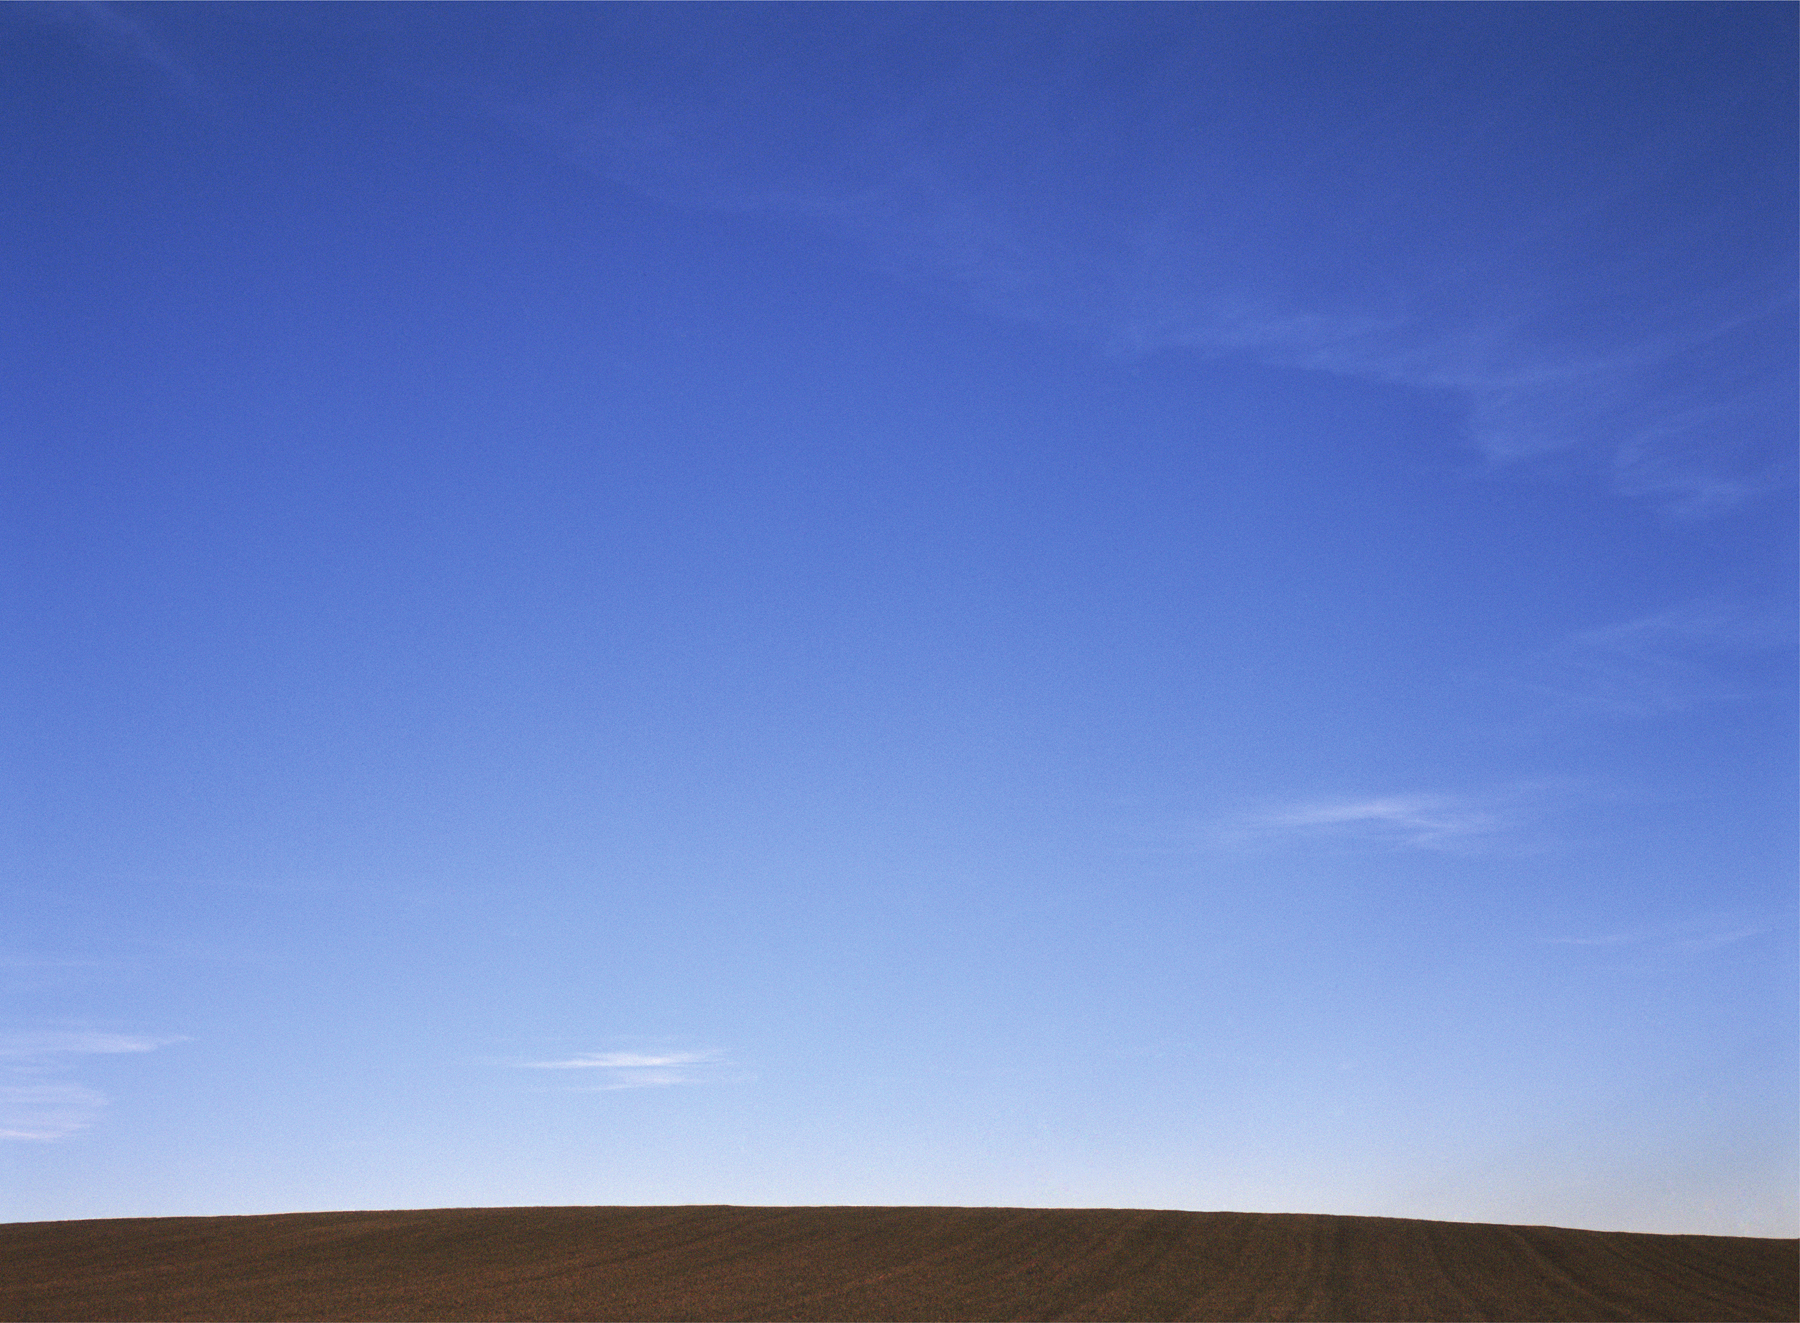 James_Cooper_Agricultural Fields_Field 12_2.jpg